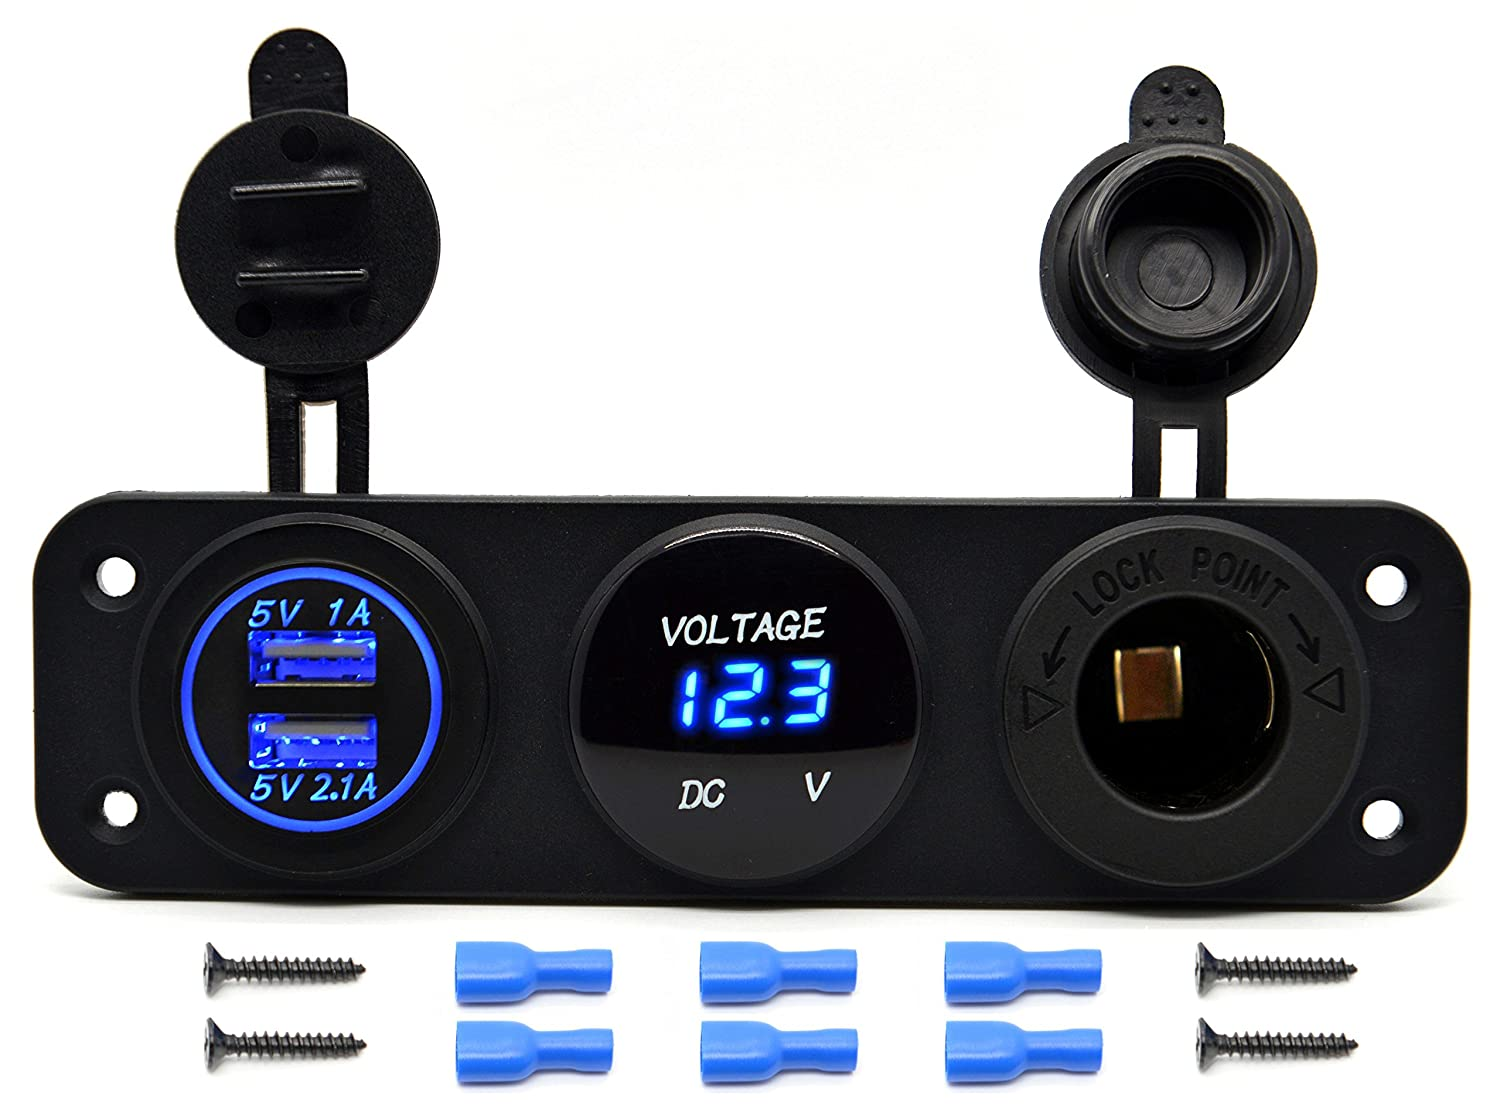 Cllena Triple Function Dual Usb Charger Led Voltmeter Shows A Circuit With Cell Lamp And The Is 12v Outlet Power Socket Panel Jack For Car Boat Marine Digital Devices Mobile Phone